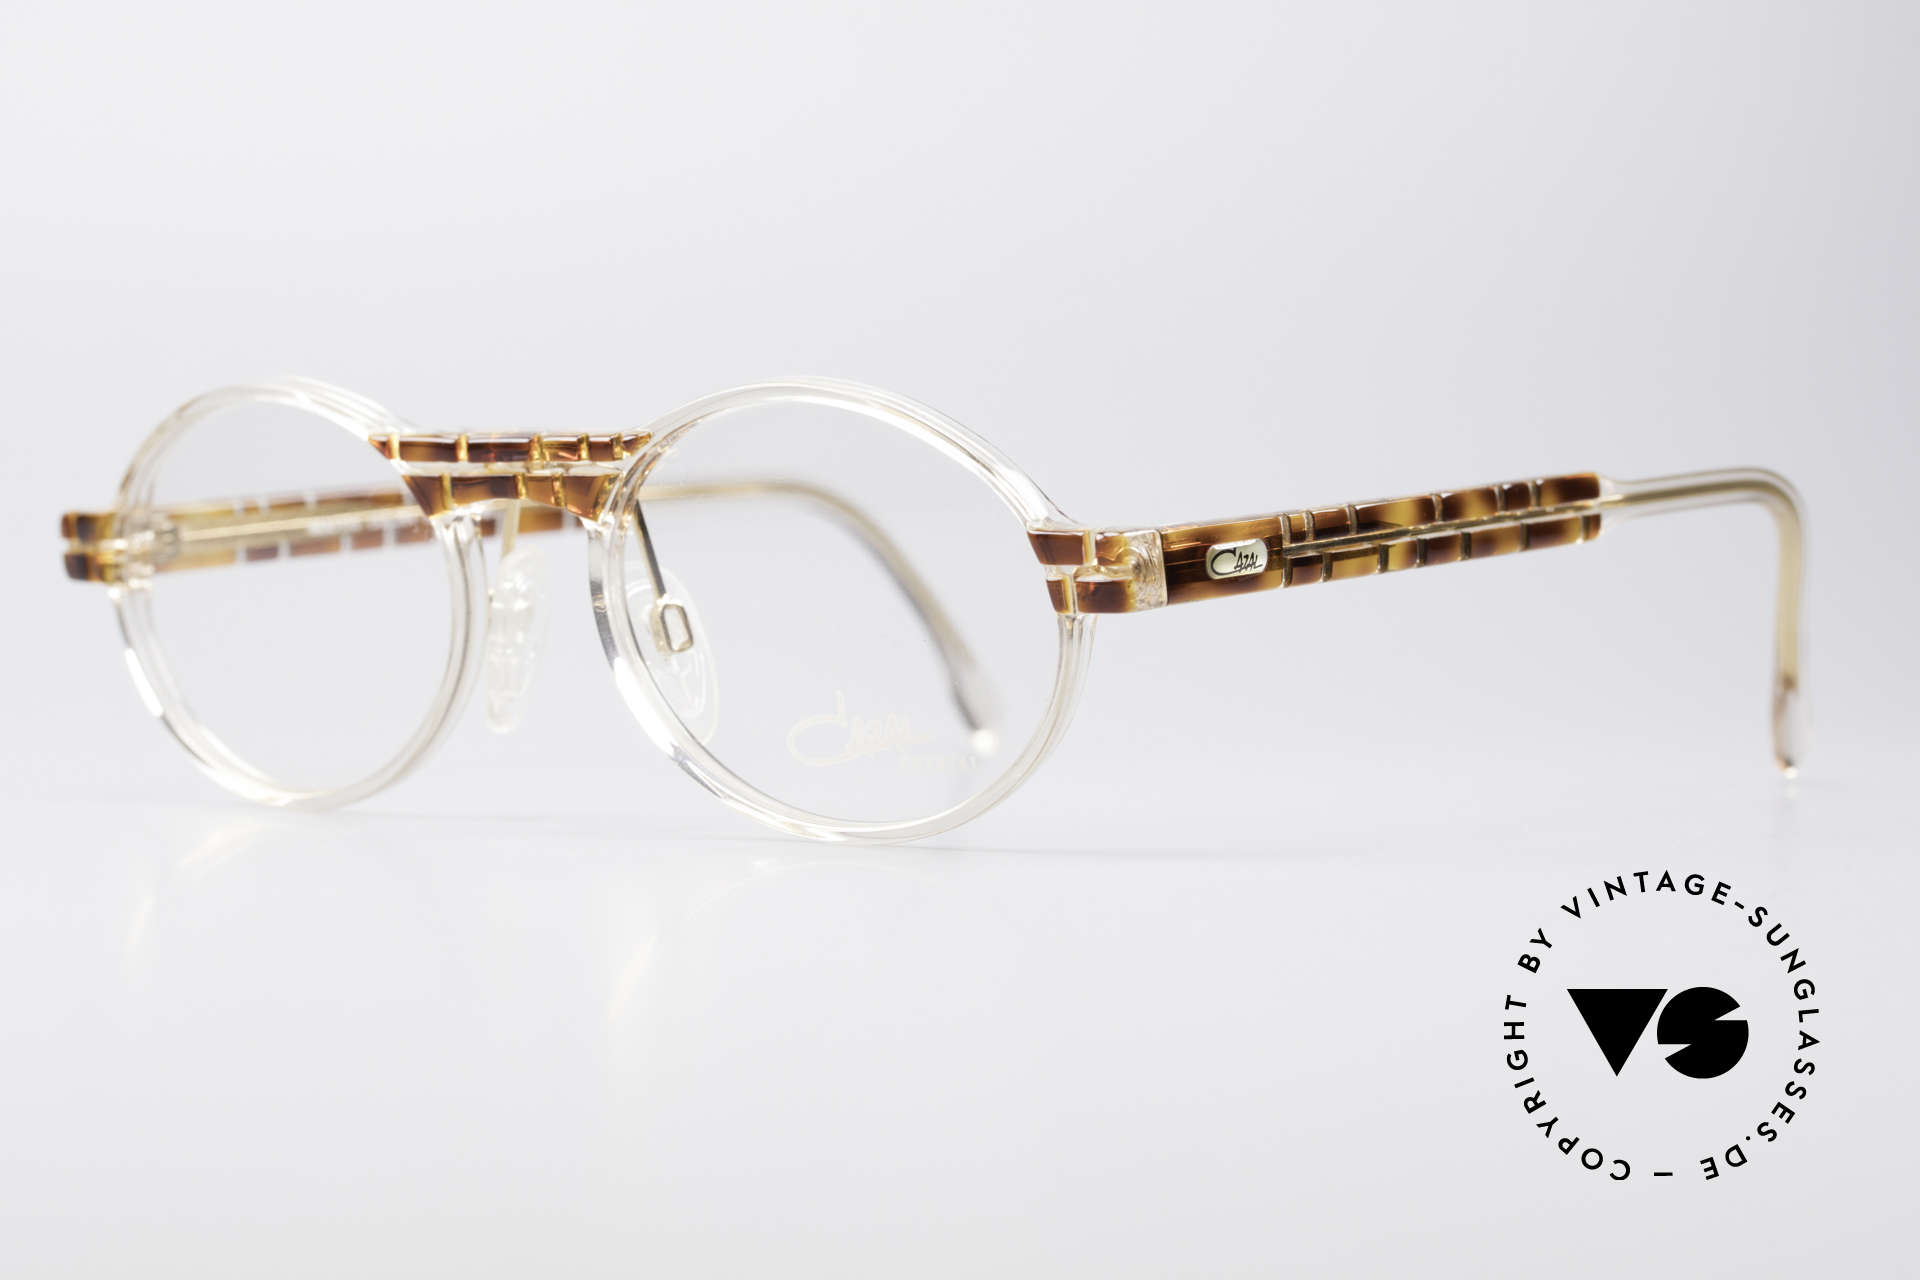 Cazal 510 Crystal Limited Vintage Cazal, special edition with crystal clear frame - truly unique!, Made for Men and Women